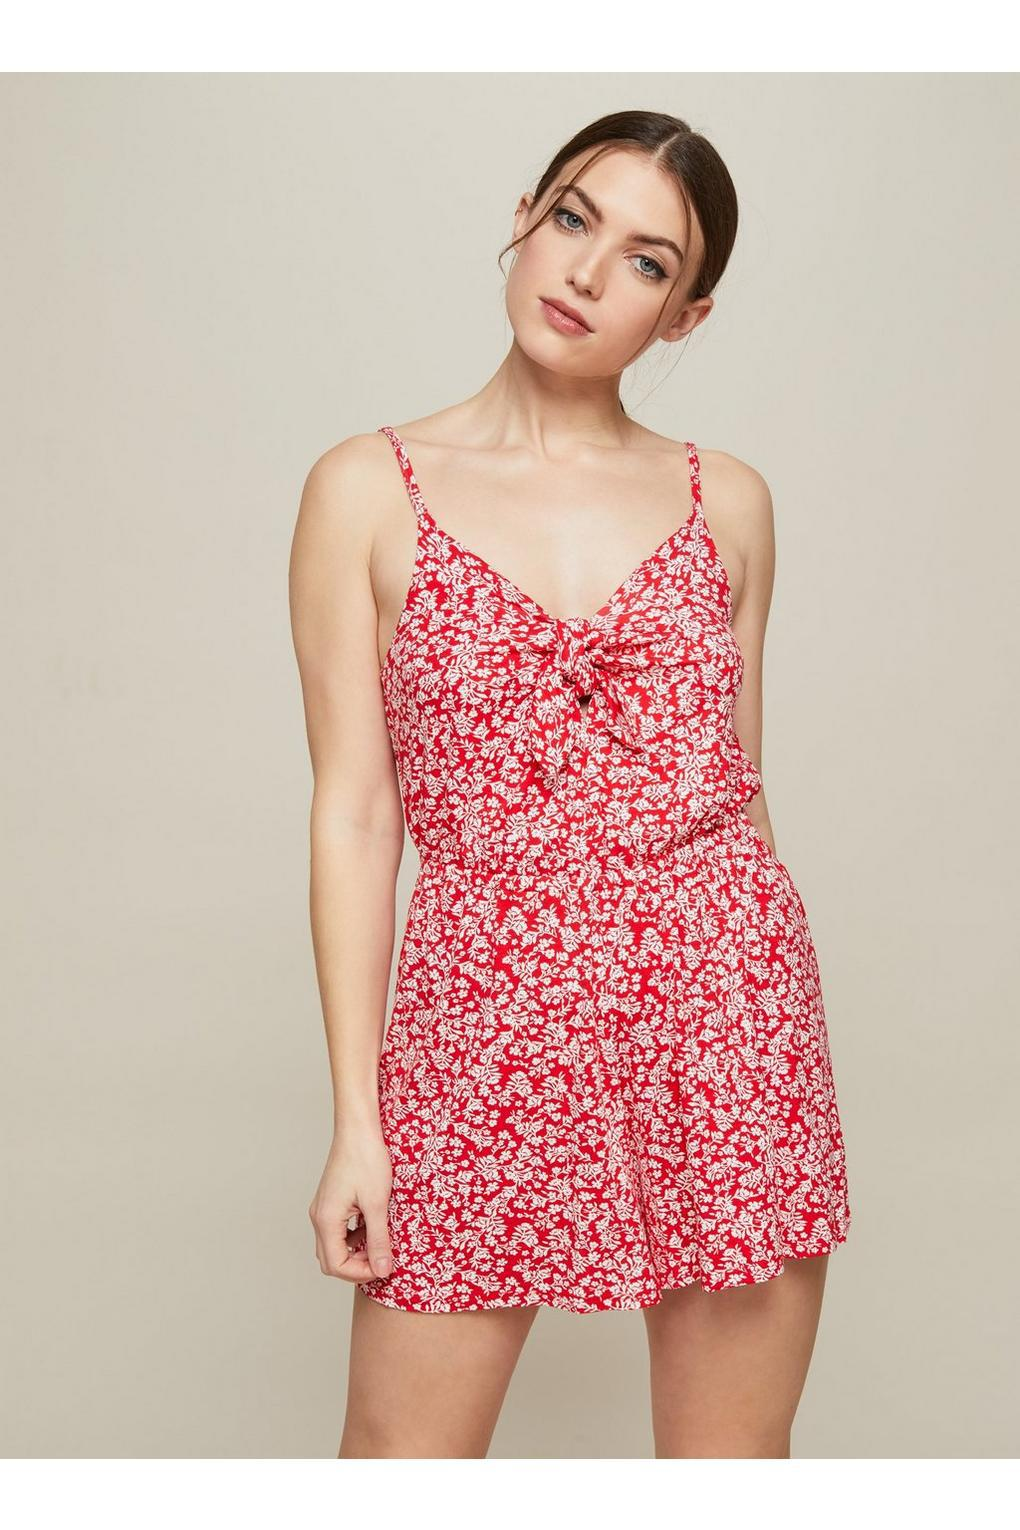 9966d13d376 Lyst - Miss Selfridge Red Printed Tie Front Playsuit in Red